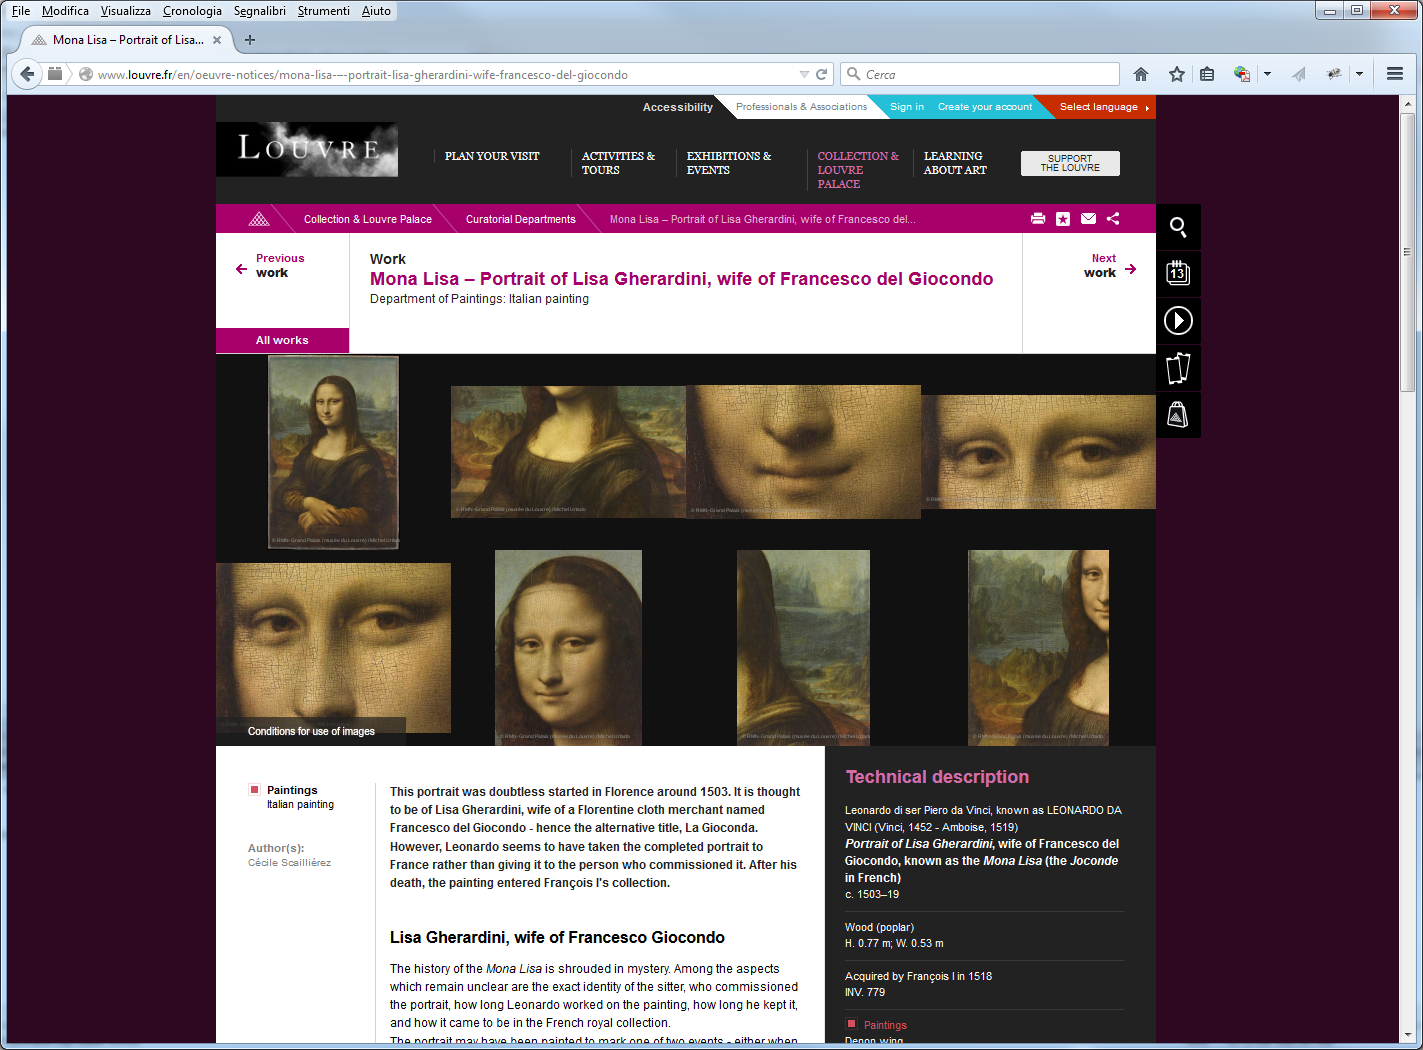 Updated Louvre's web page (at the time of this article) without the statement about the unknown origin of Monna Lisa.